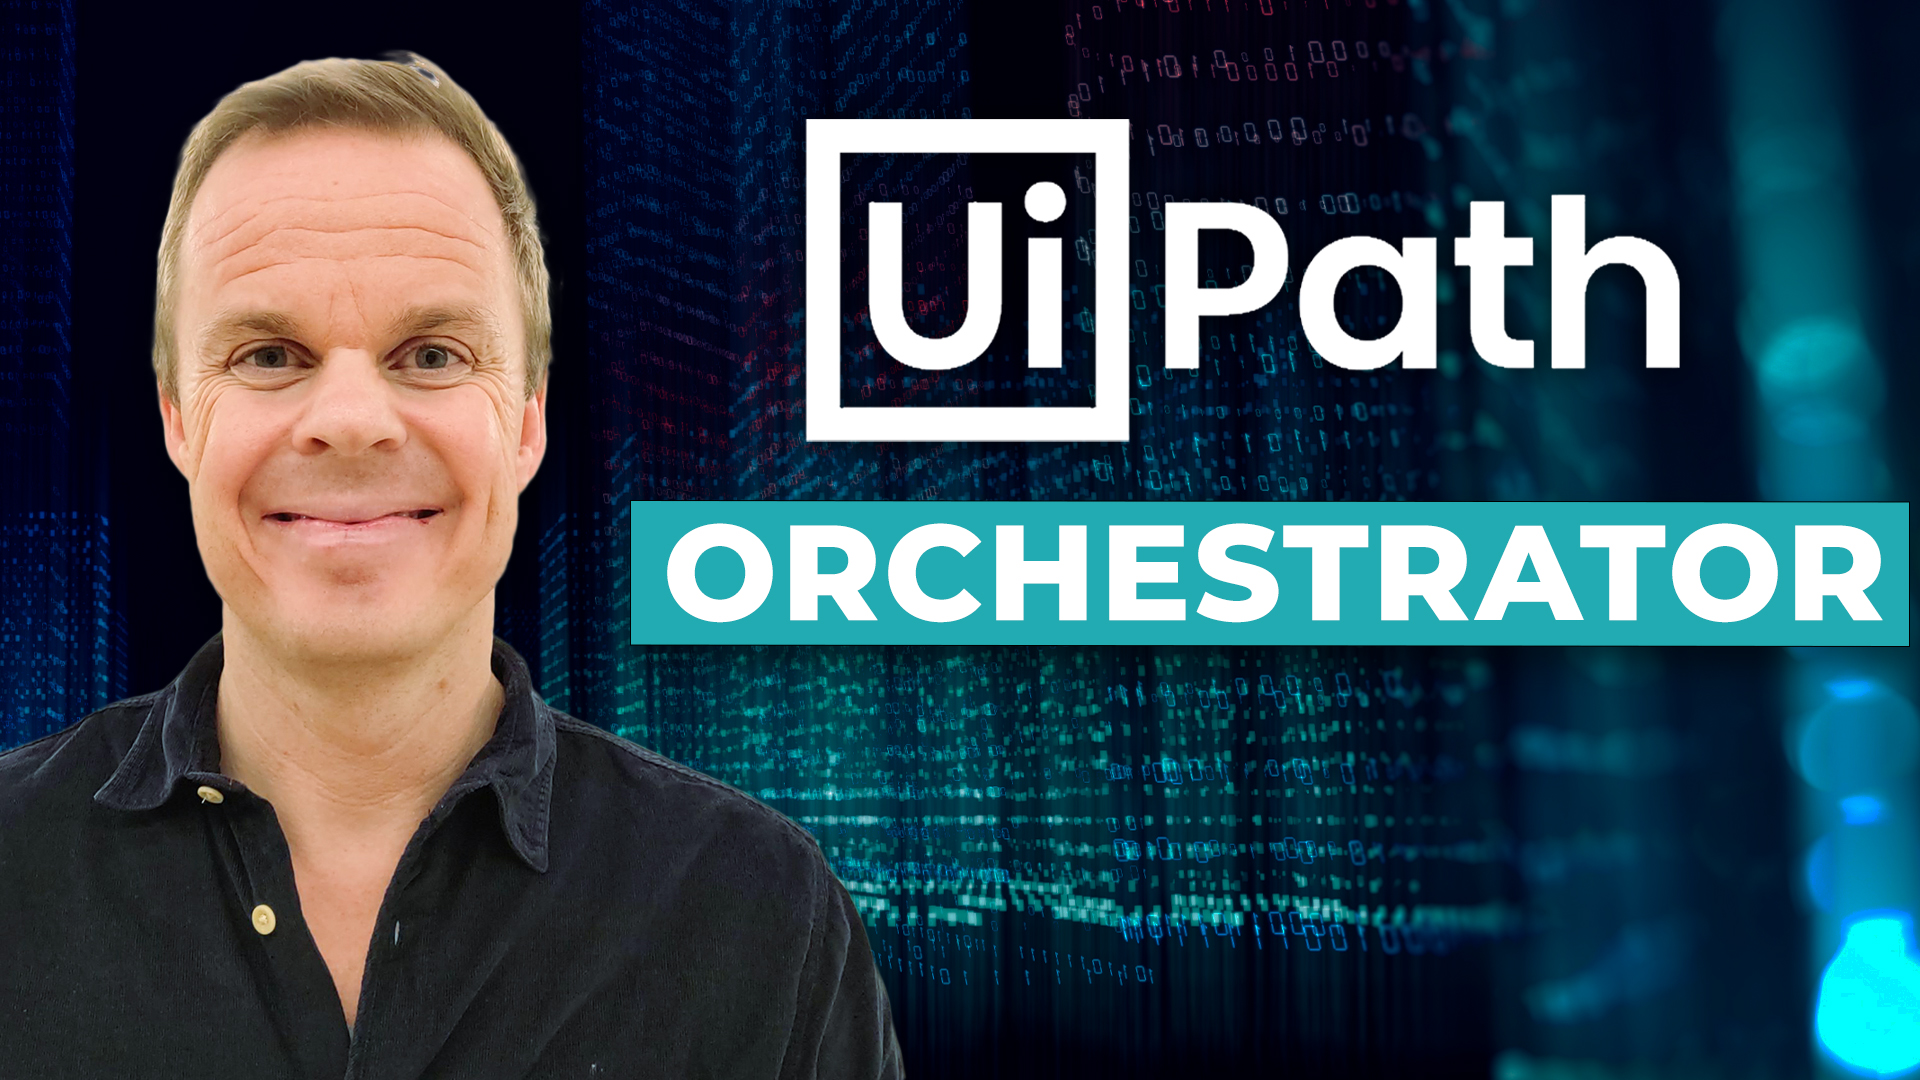 You are currently viewing UiPath Orchestrator – Complete Guide [2021]